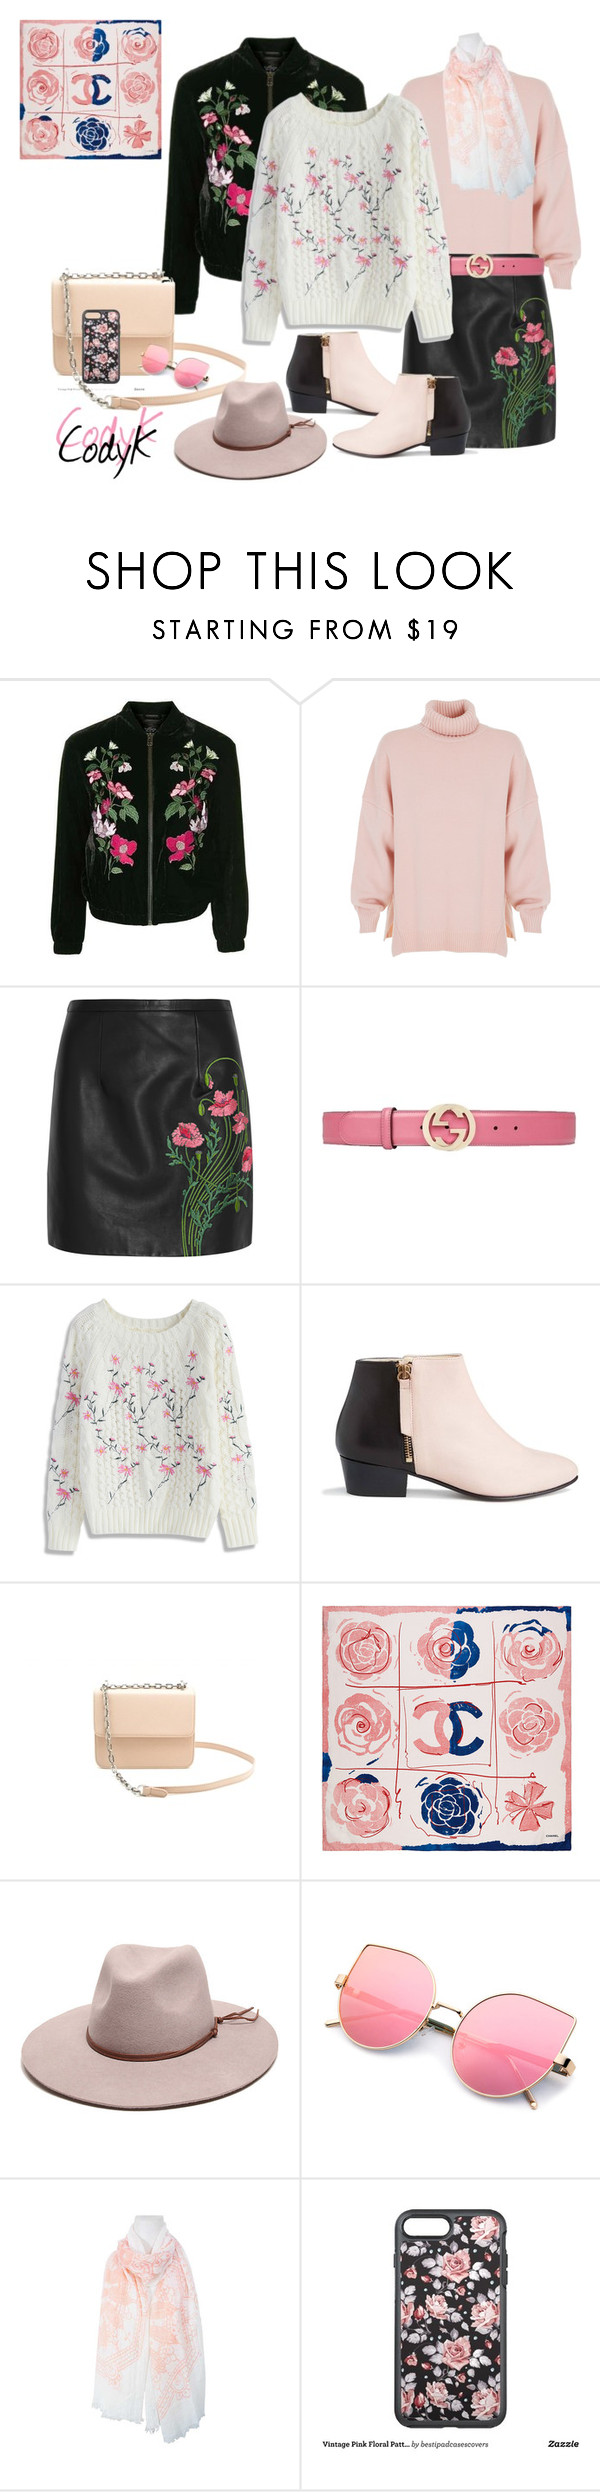 """Black, White, Pink"" by cody-k ❤ liked on Polyvore featuring Topshop, TIBI, Christopher Kane, Gucci, Chicwish, Nine to Five, Chanel, Gottex and OtterBox"